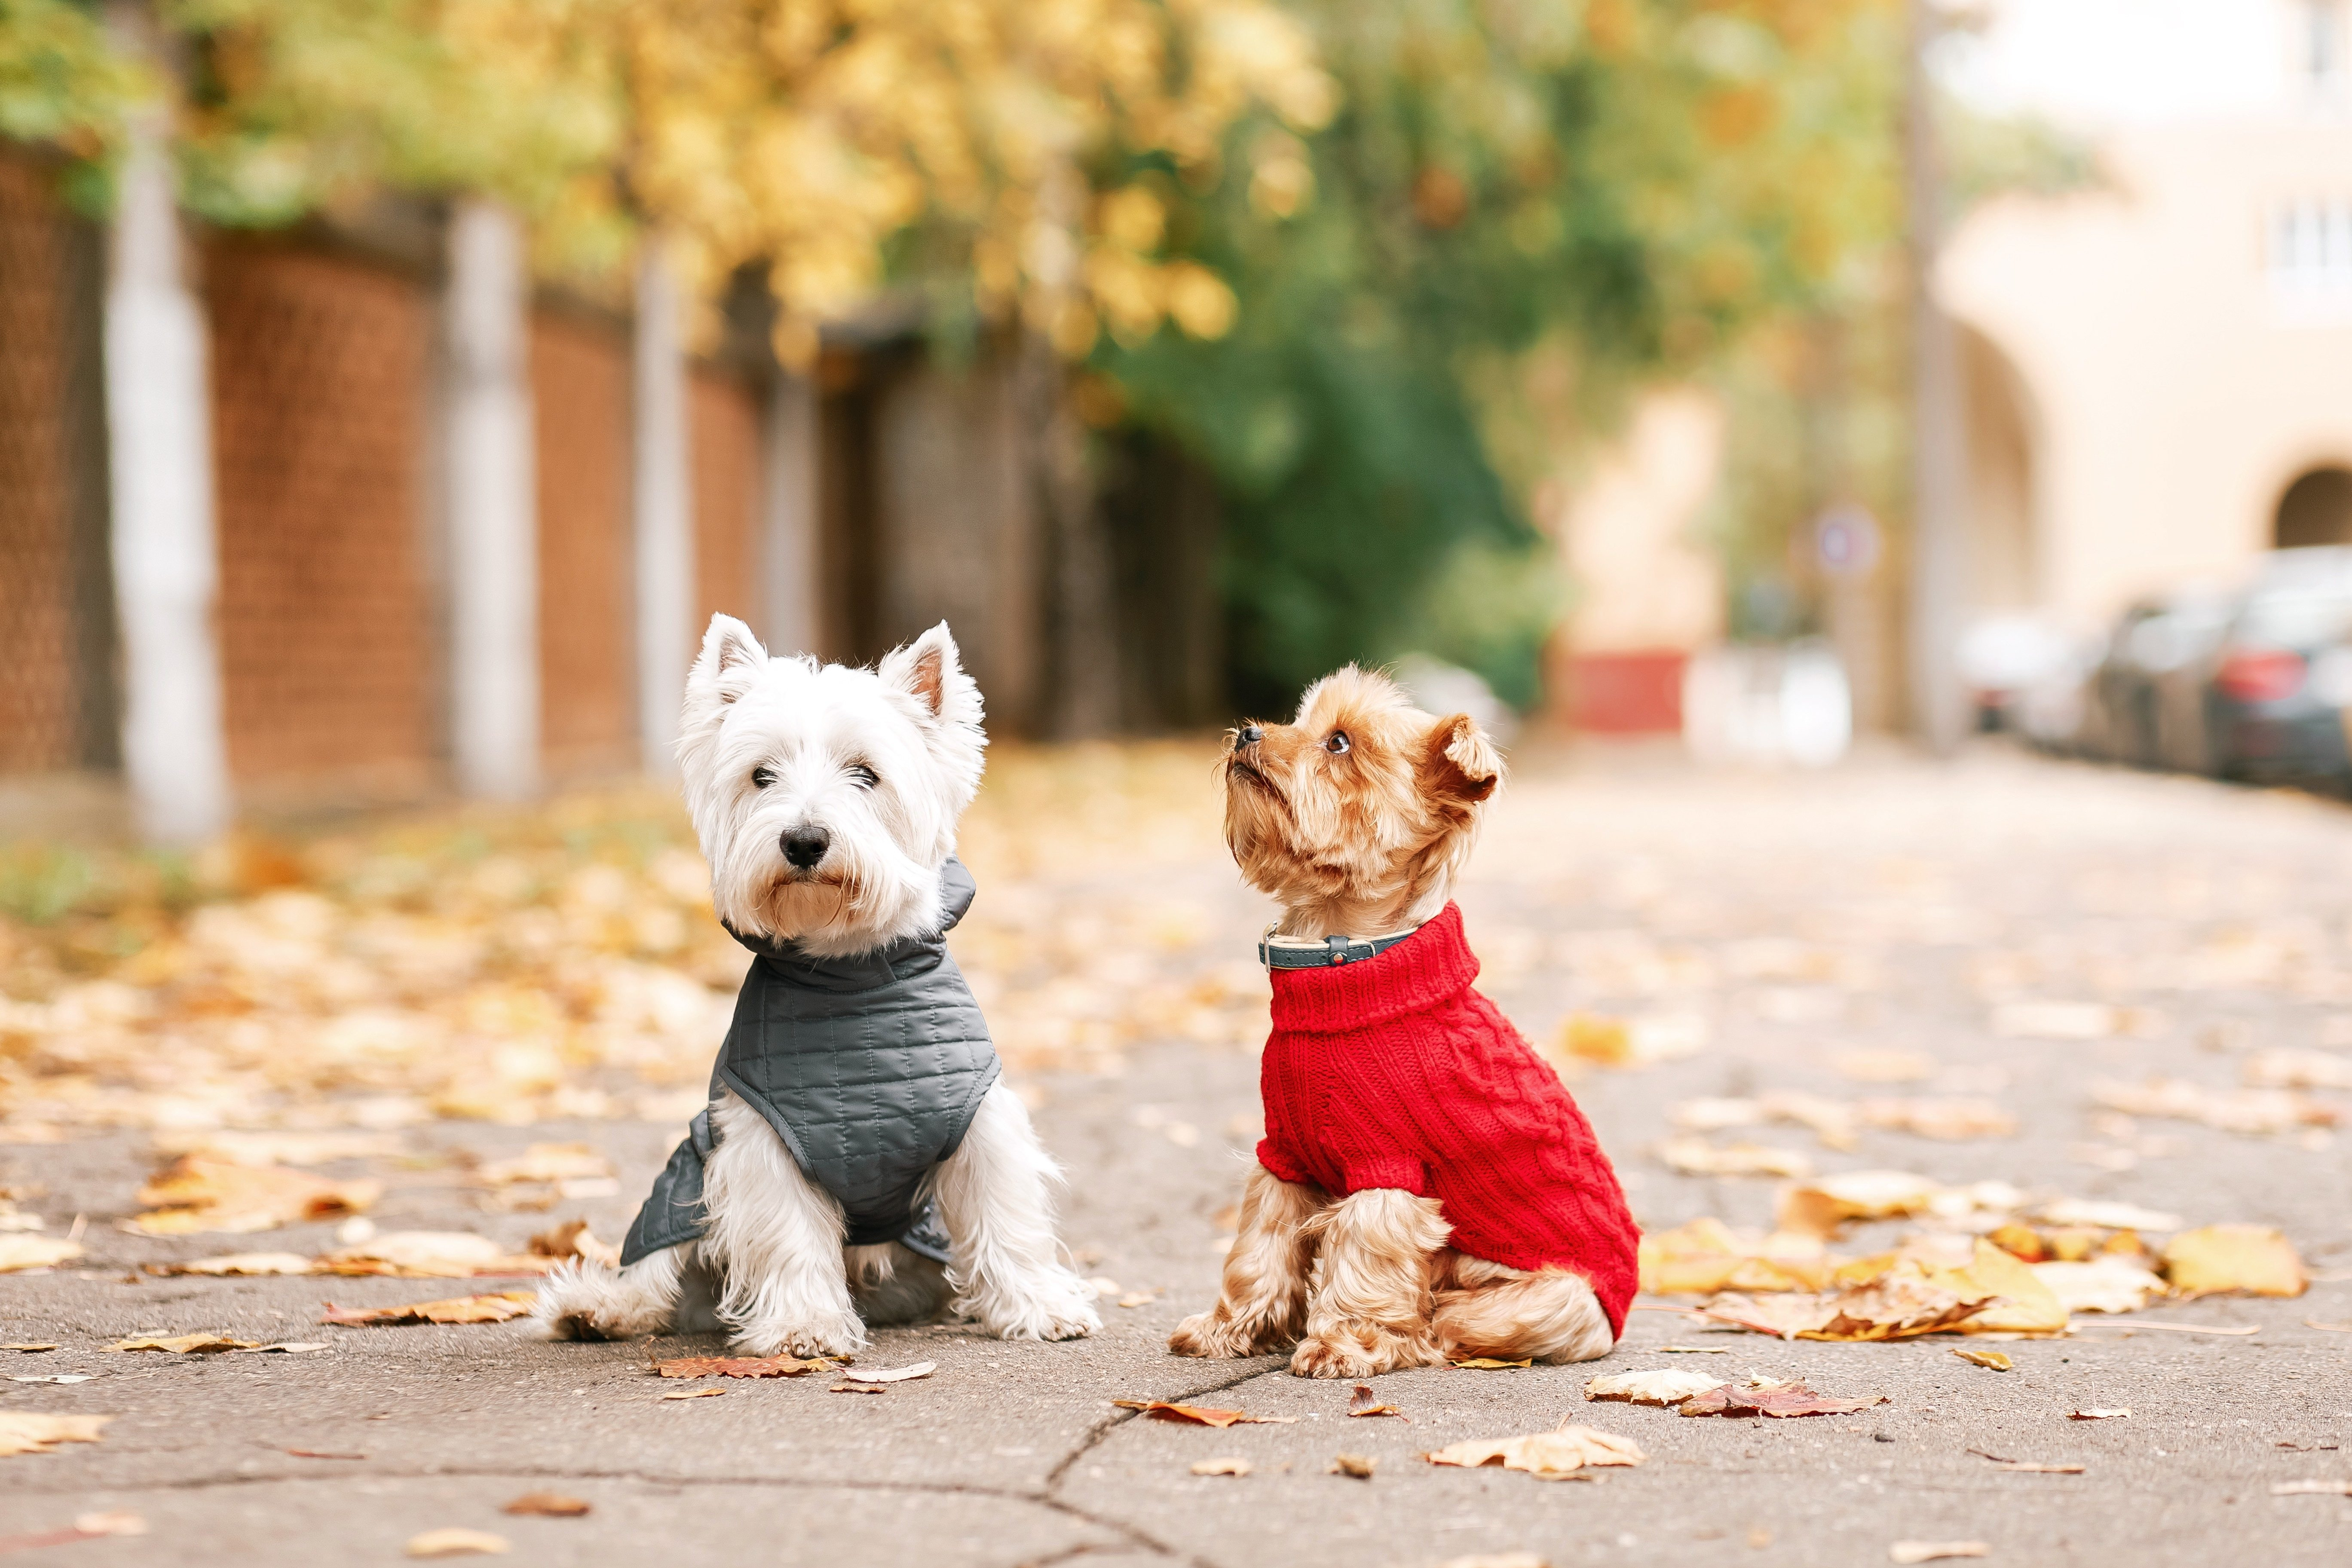 Portrait of two dogs friends west highland white terrier and yorkshire terrier playing in the park on the autumn foliage. gold nature. dog in red pullover and grey coat